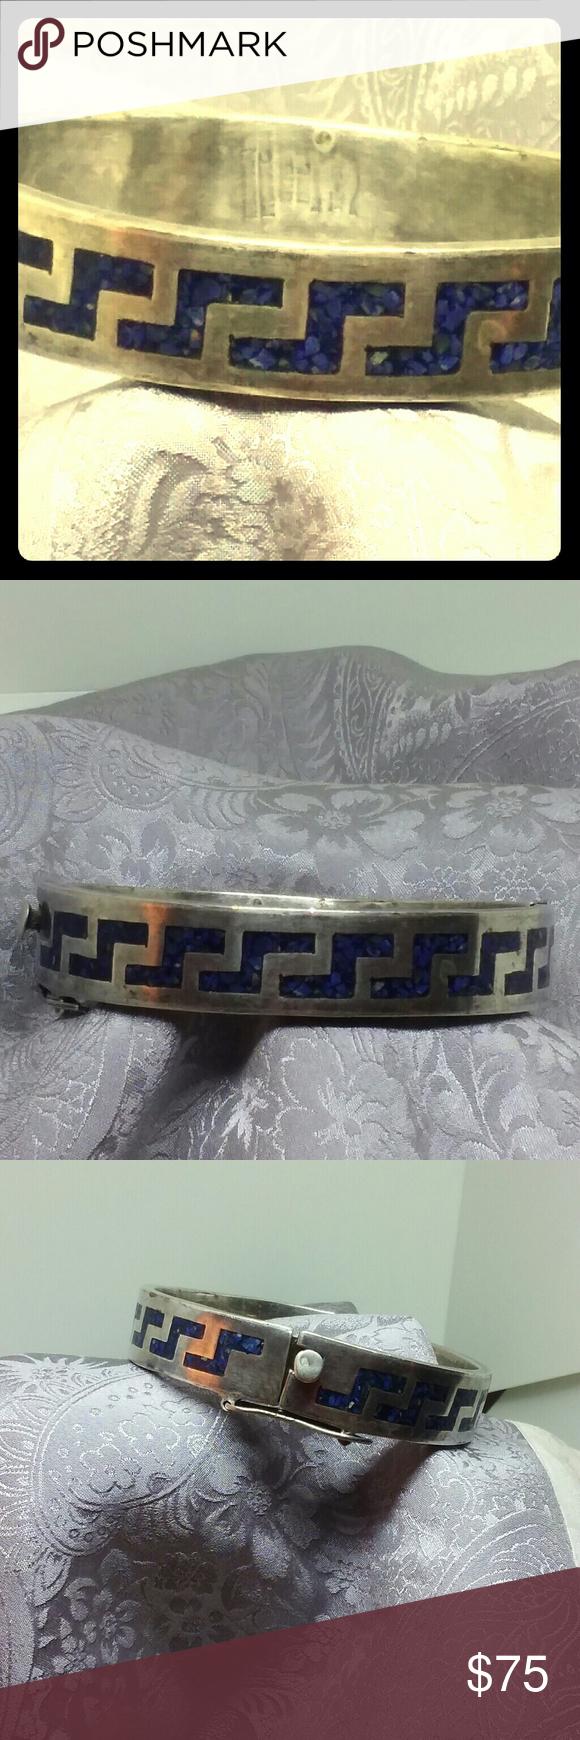 Sterling Silver Lapis Inlay Bangle Bracelet Vintage blue lapis lazily inlaid in sterling silver. It is marked but the maker is very hard to make out. Mexican? Native American? It is very good condition with no missing lapis stones and the locking clasp is working. Jewelry Bracelets